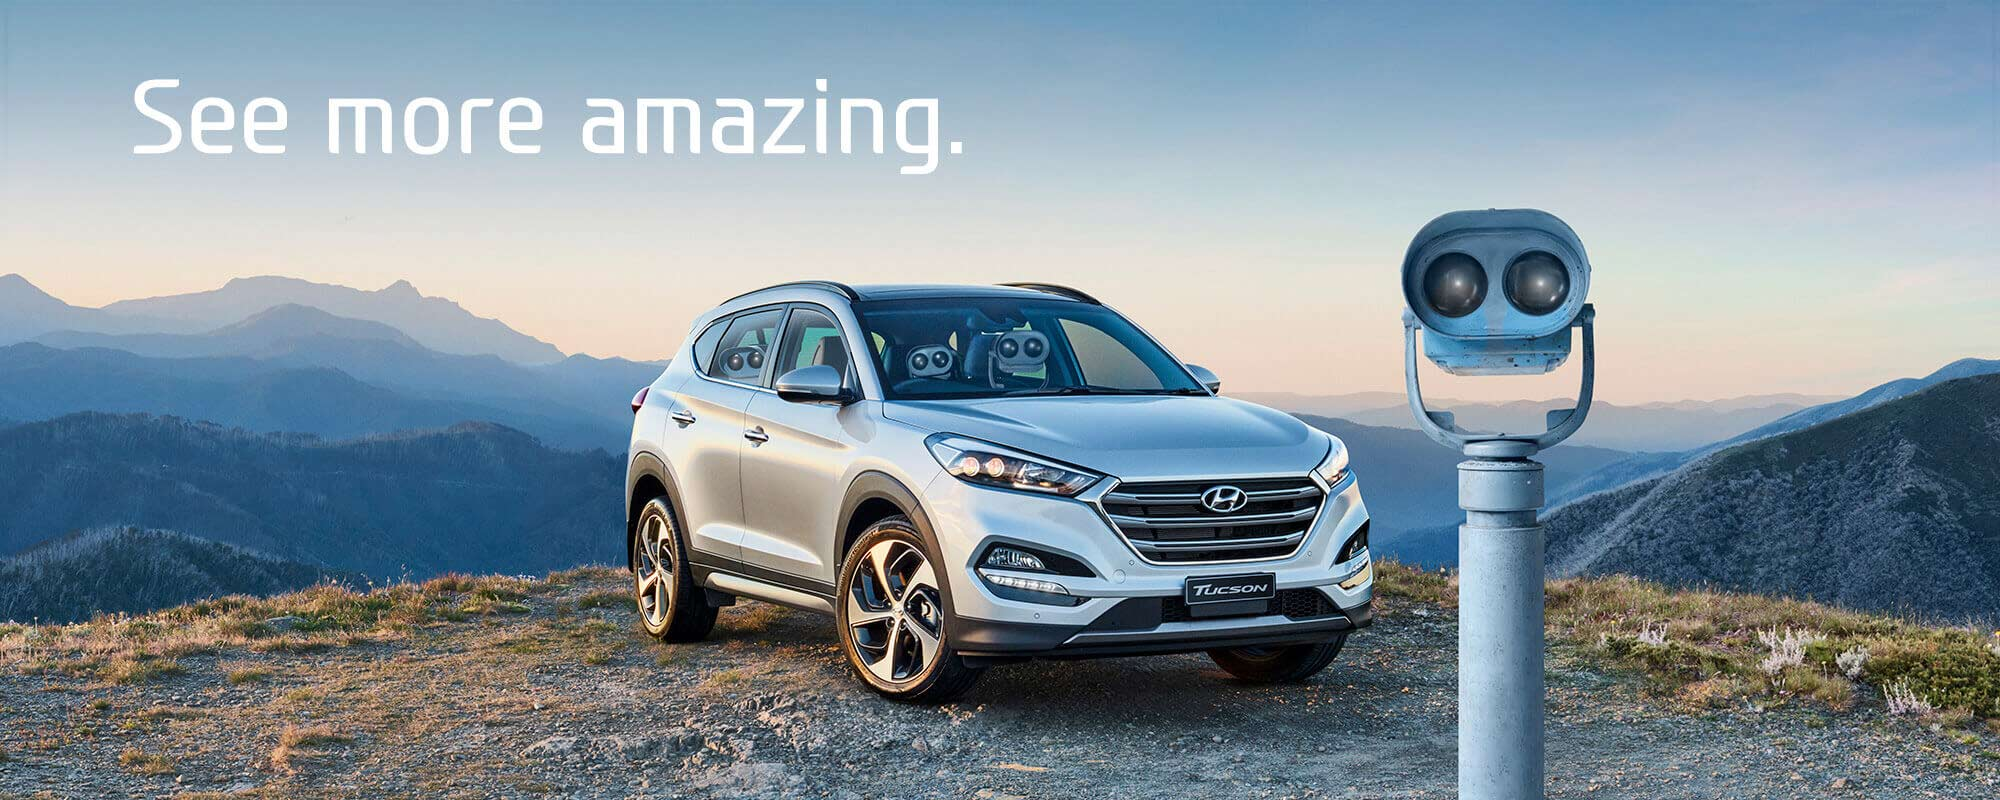 See more amazing with the all new Hyundai Tucson at Northside Hyundai.